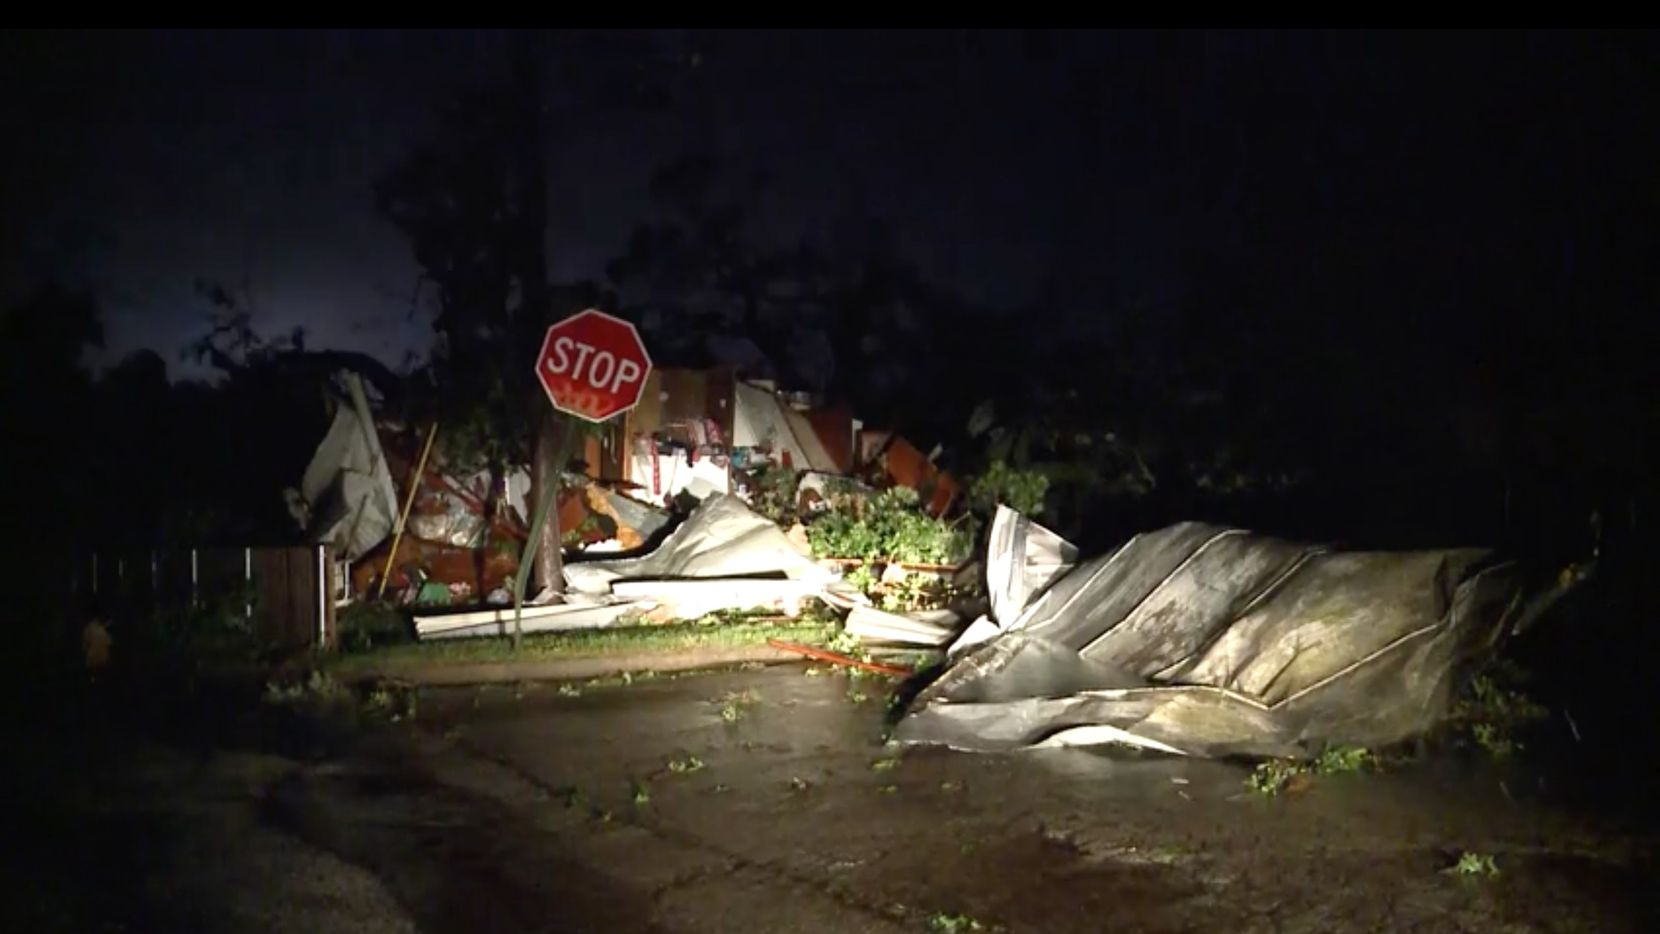 Storm damage in Bowie, Texas, after a possible tornado on Friday, May 22, 2020.